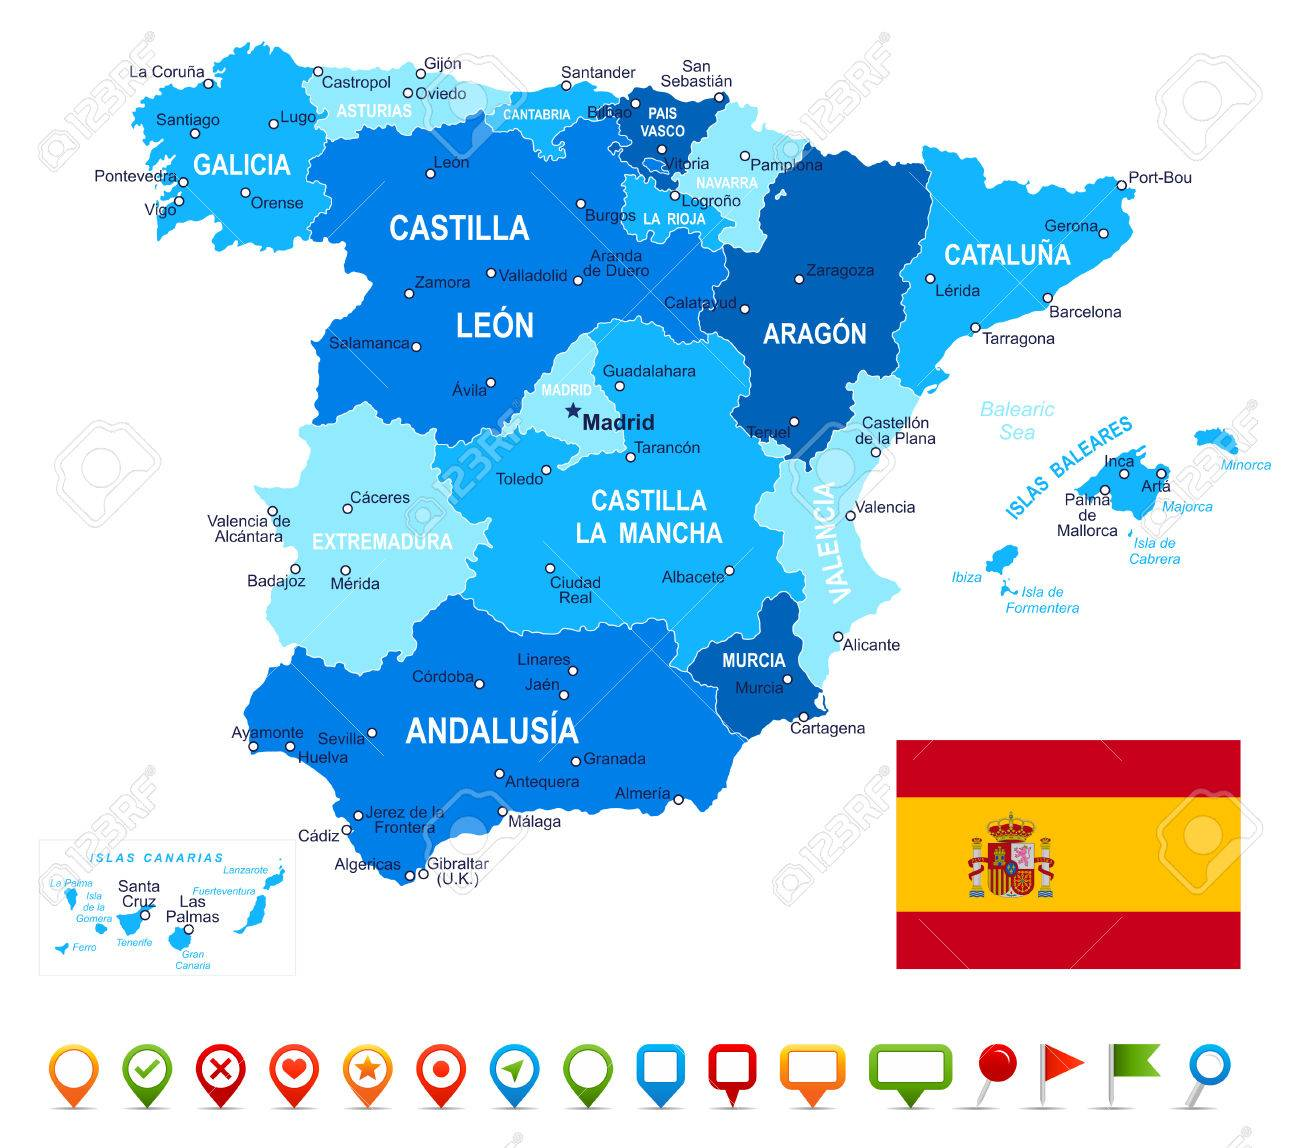 Spain - map, flag and navigation icons - illustration.Image contains next layers. There are land contours, country and land names, city names, water object names, flag, navigation icons. - 42708152